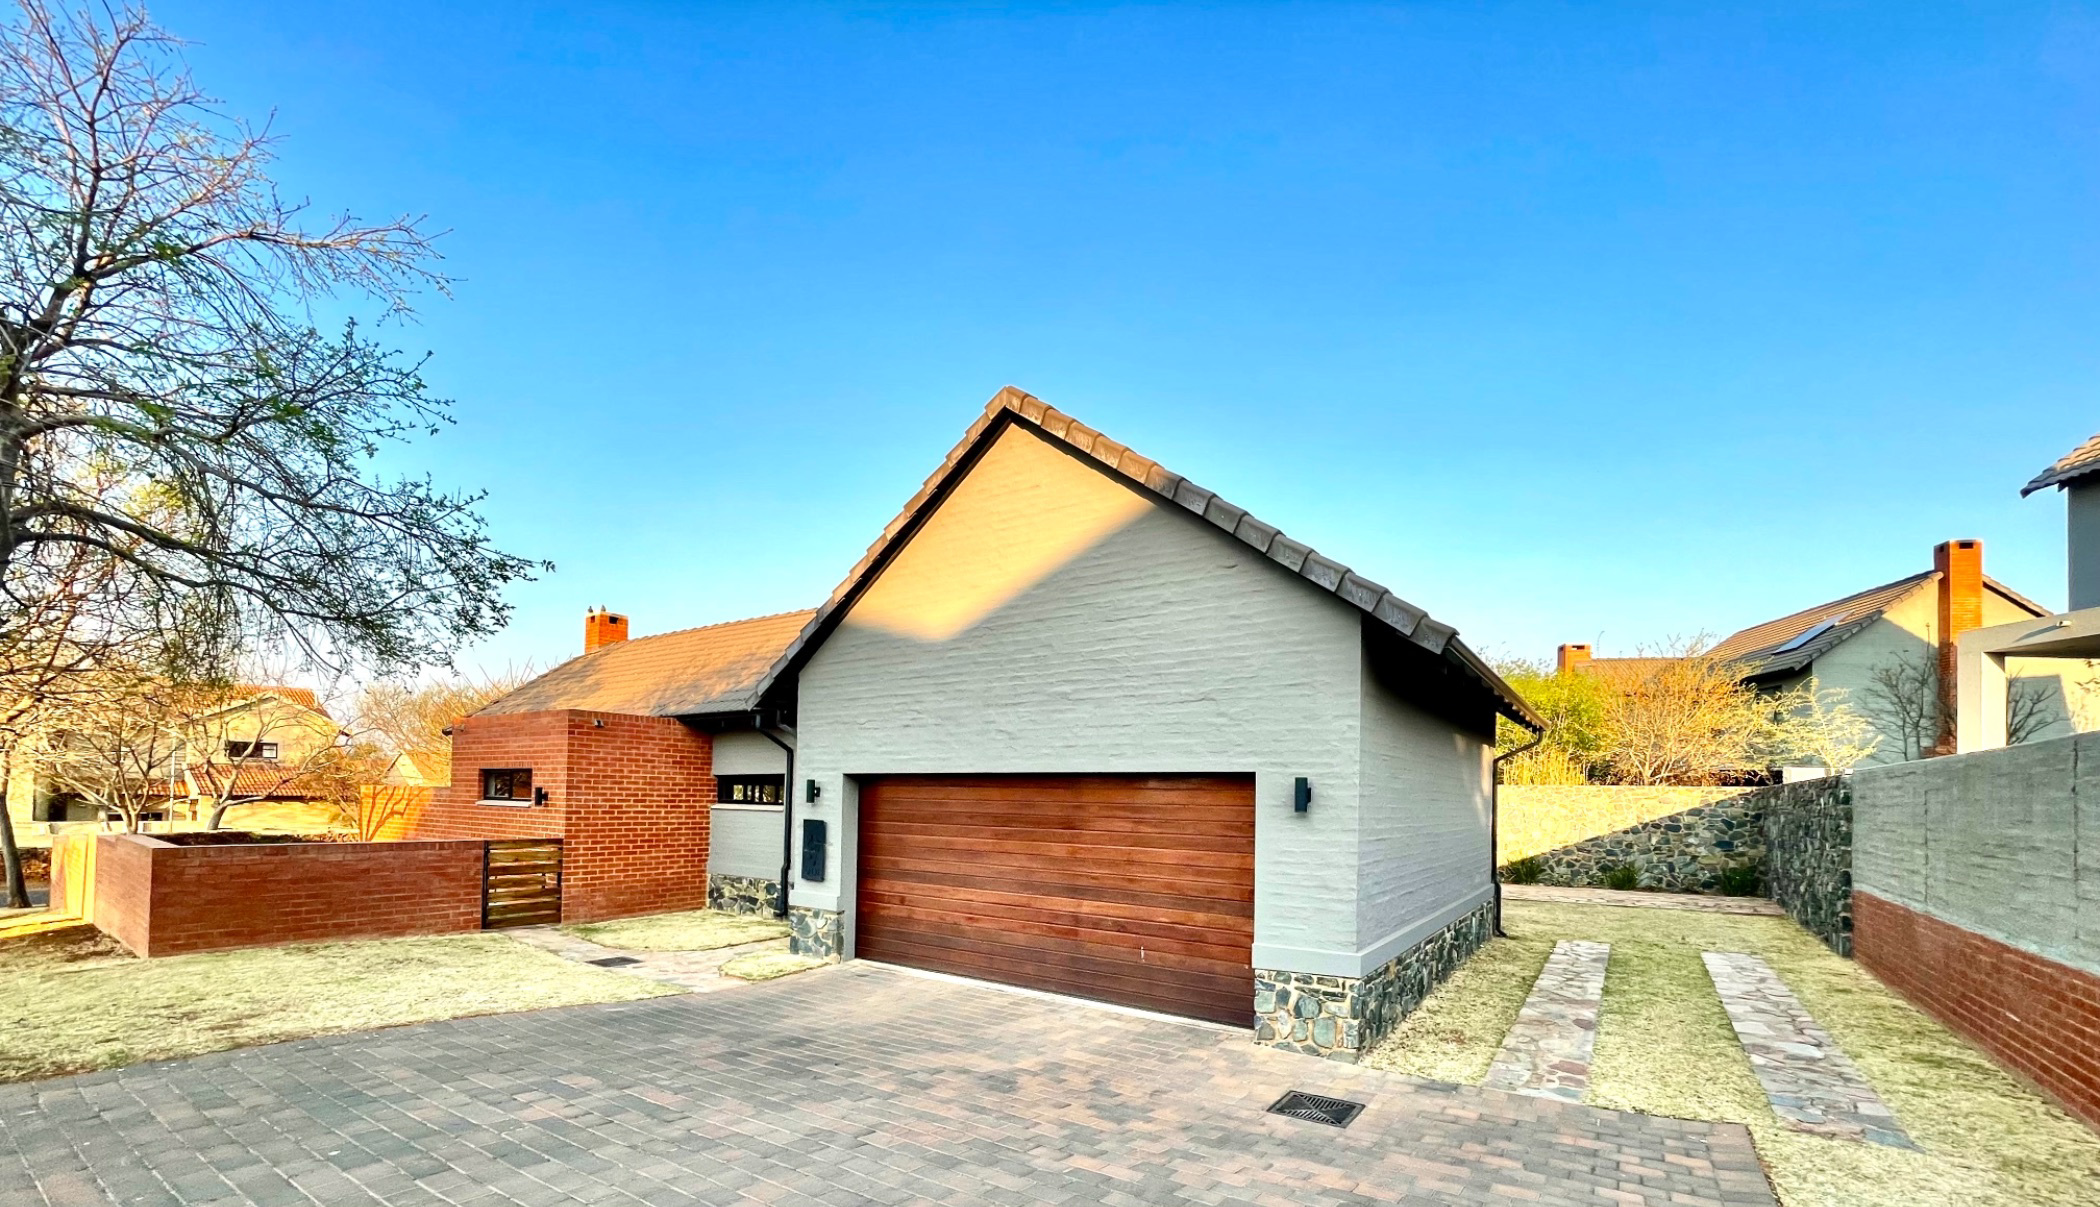 3 bedroom house for sale in Country View Estate